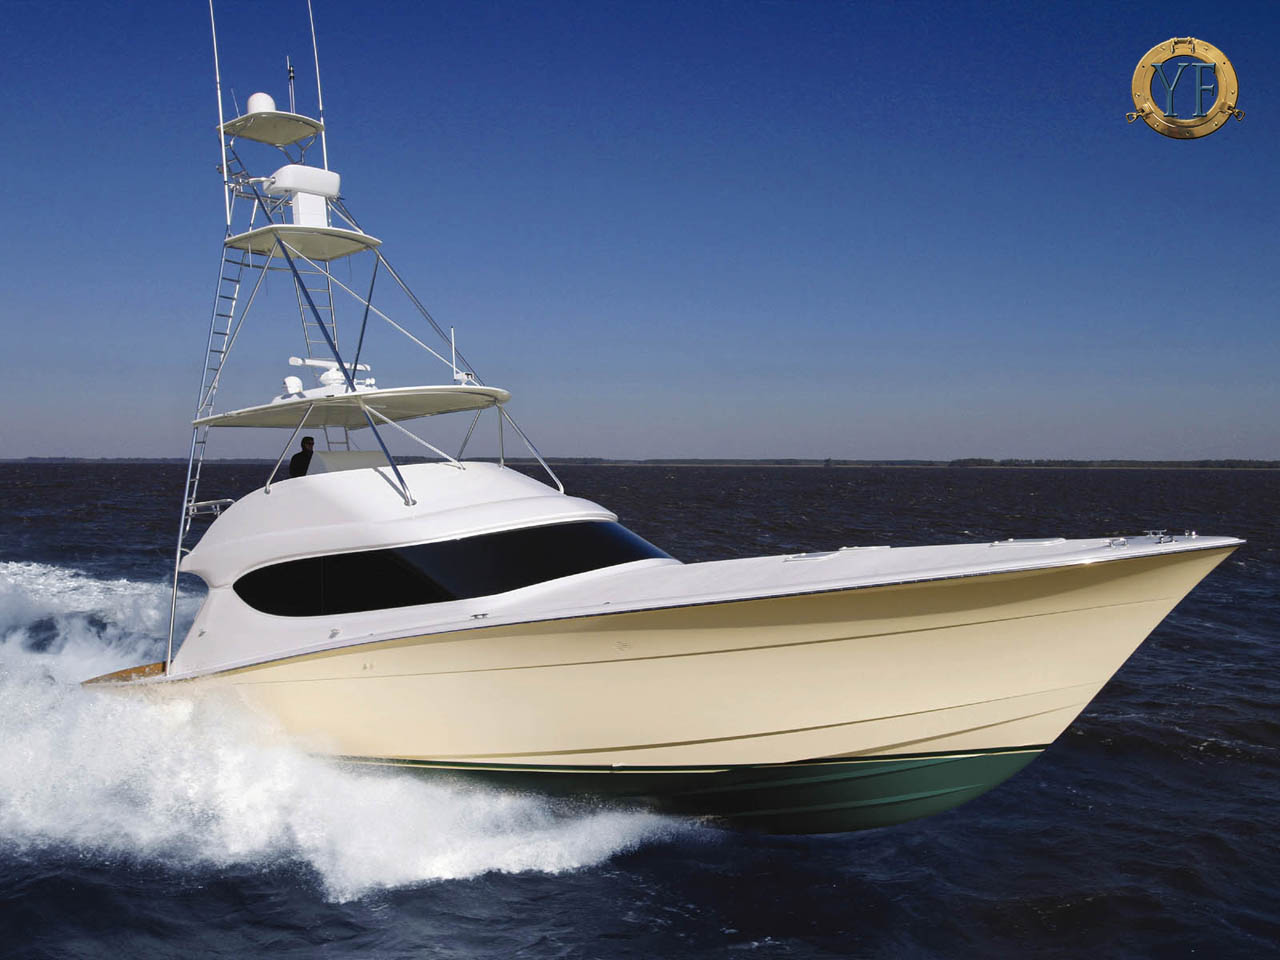 Hatteras yacht wallpapers hatteras yacht yachtforums for Hatteras fishing boat